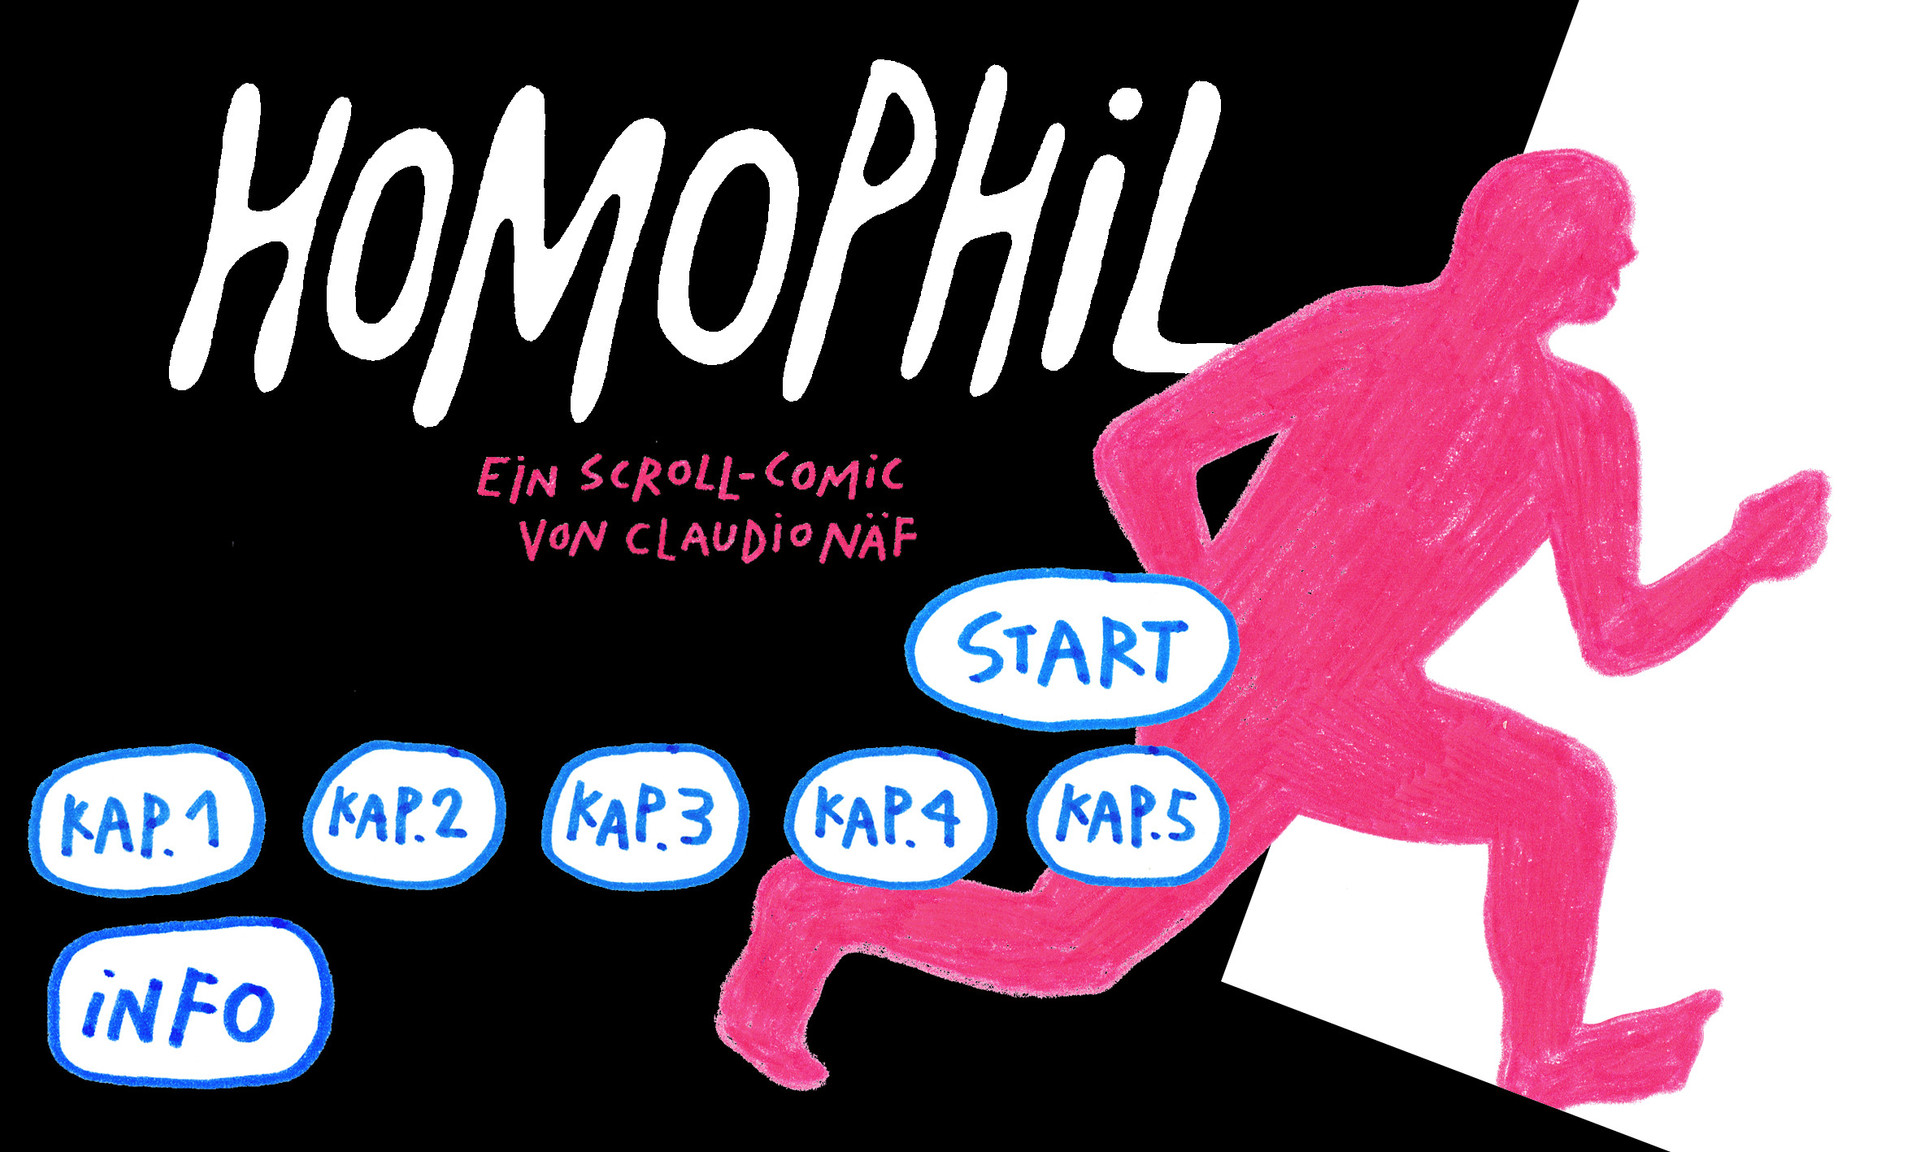 Homophil Menu